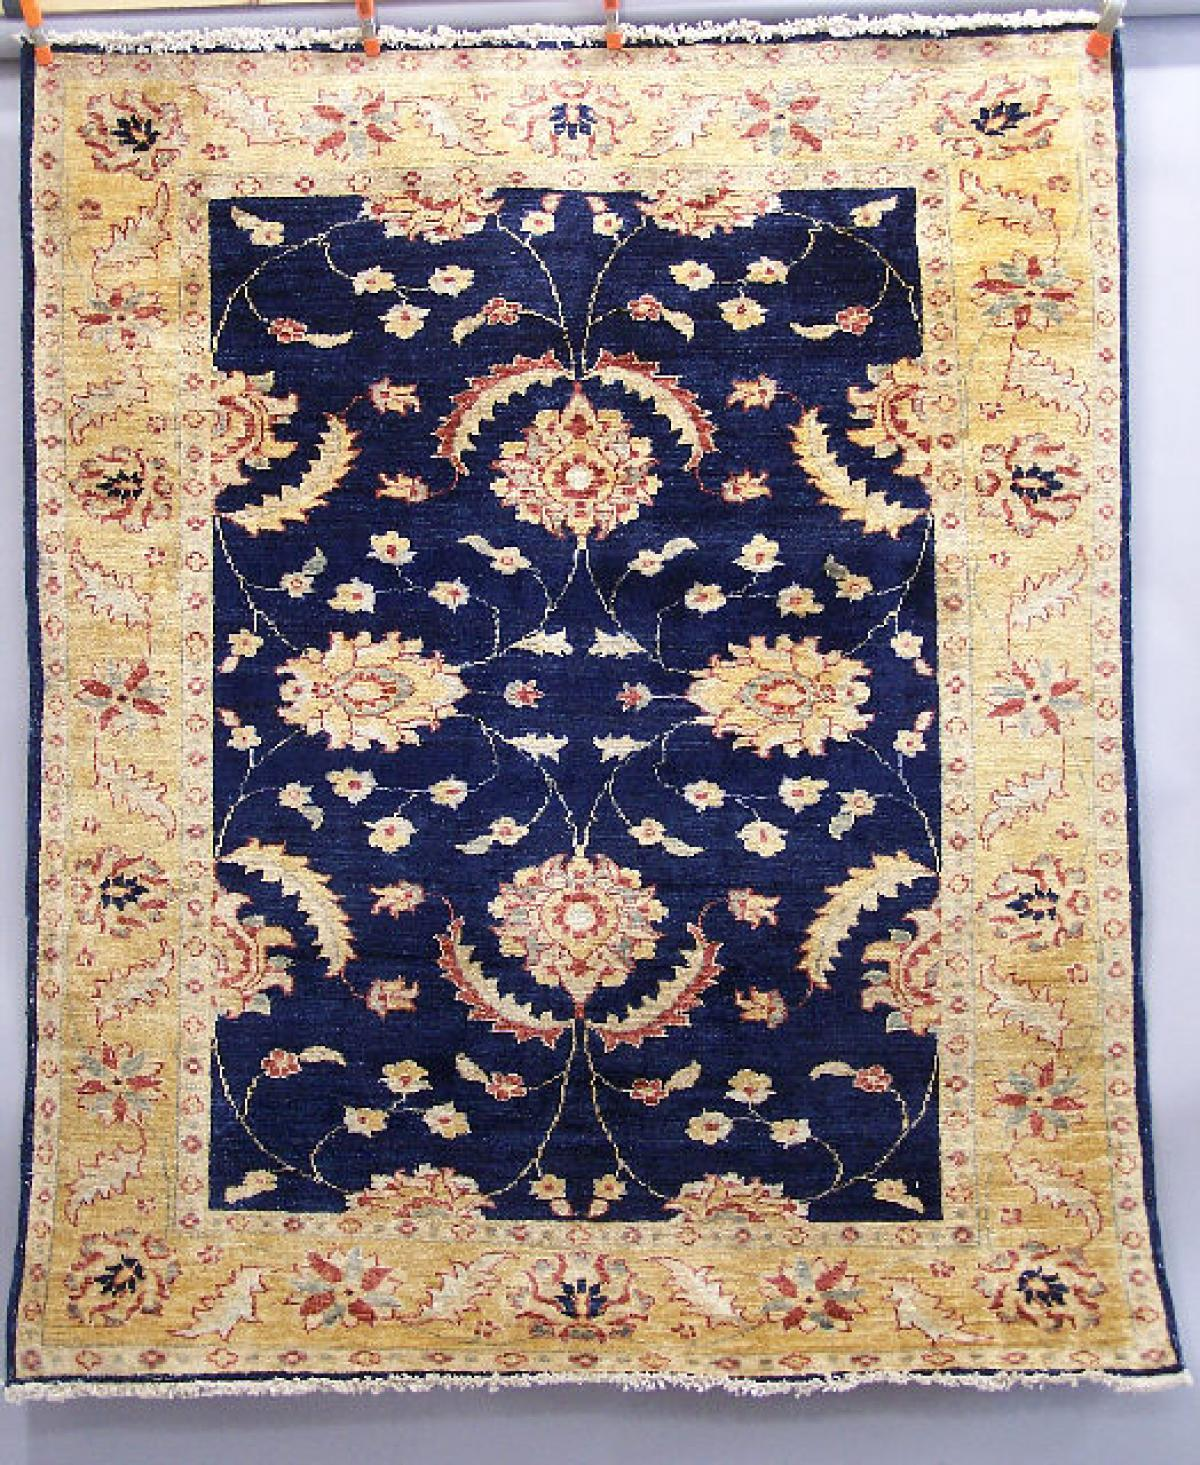 Afghanistan Chobi Rug Ink Blue Field With Peachy Gold Terra Cotta And Gray Allover Flora 6 5 X 3 This Was Purchased In About